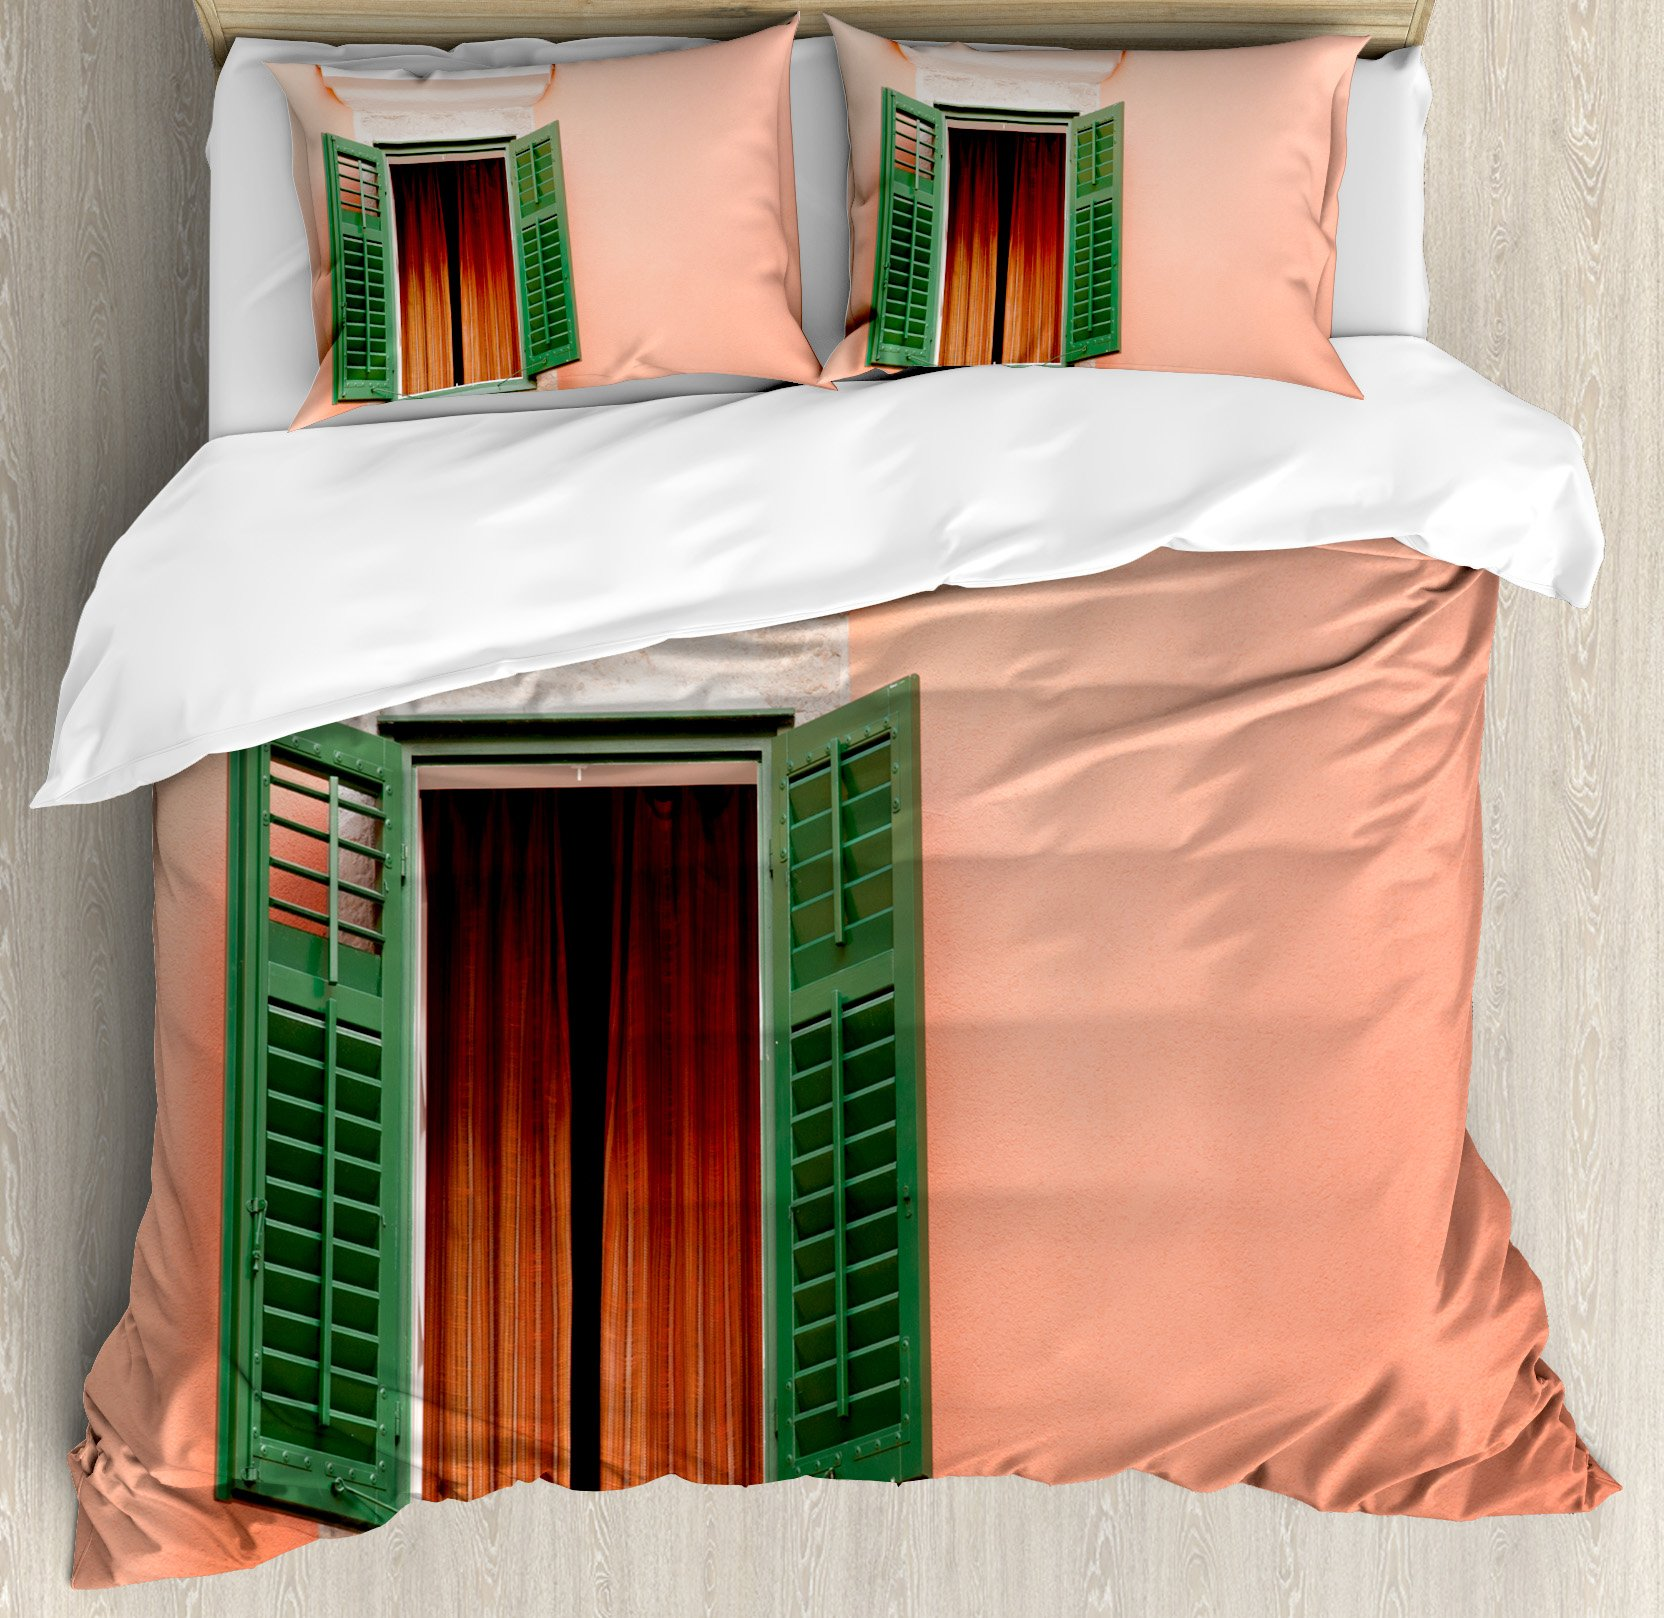 Shutters Decor Duvet Cover Set by Ambesonne, Mediterranean Style Image of Window and Shutters Old House Rurals Home Deco, 3 Piece Bedding Set with Pillow Shams, Queen / Full, Orange Green White